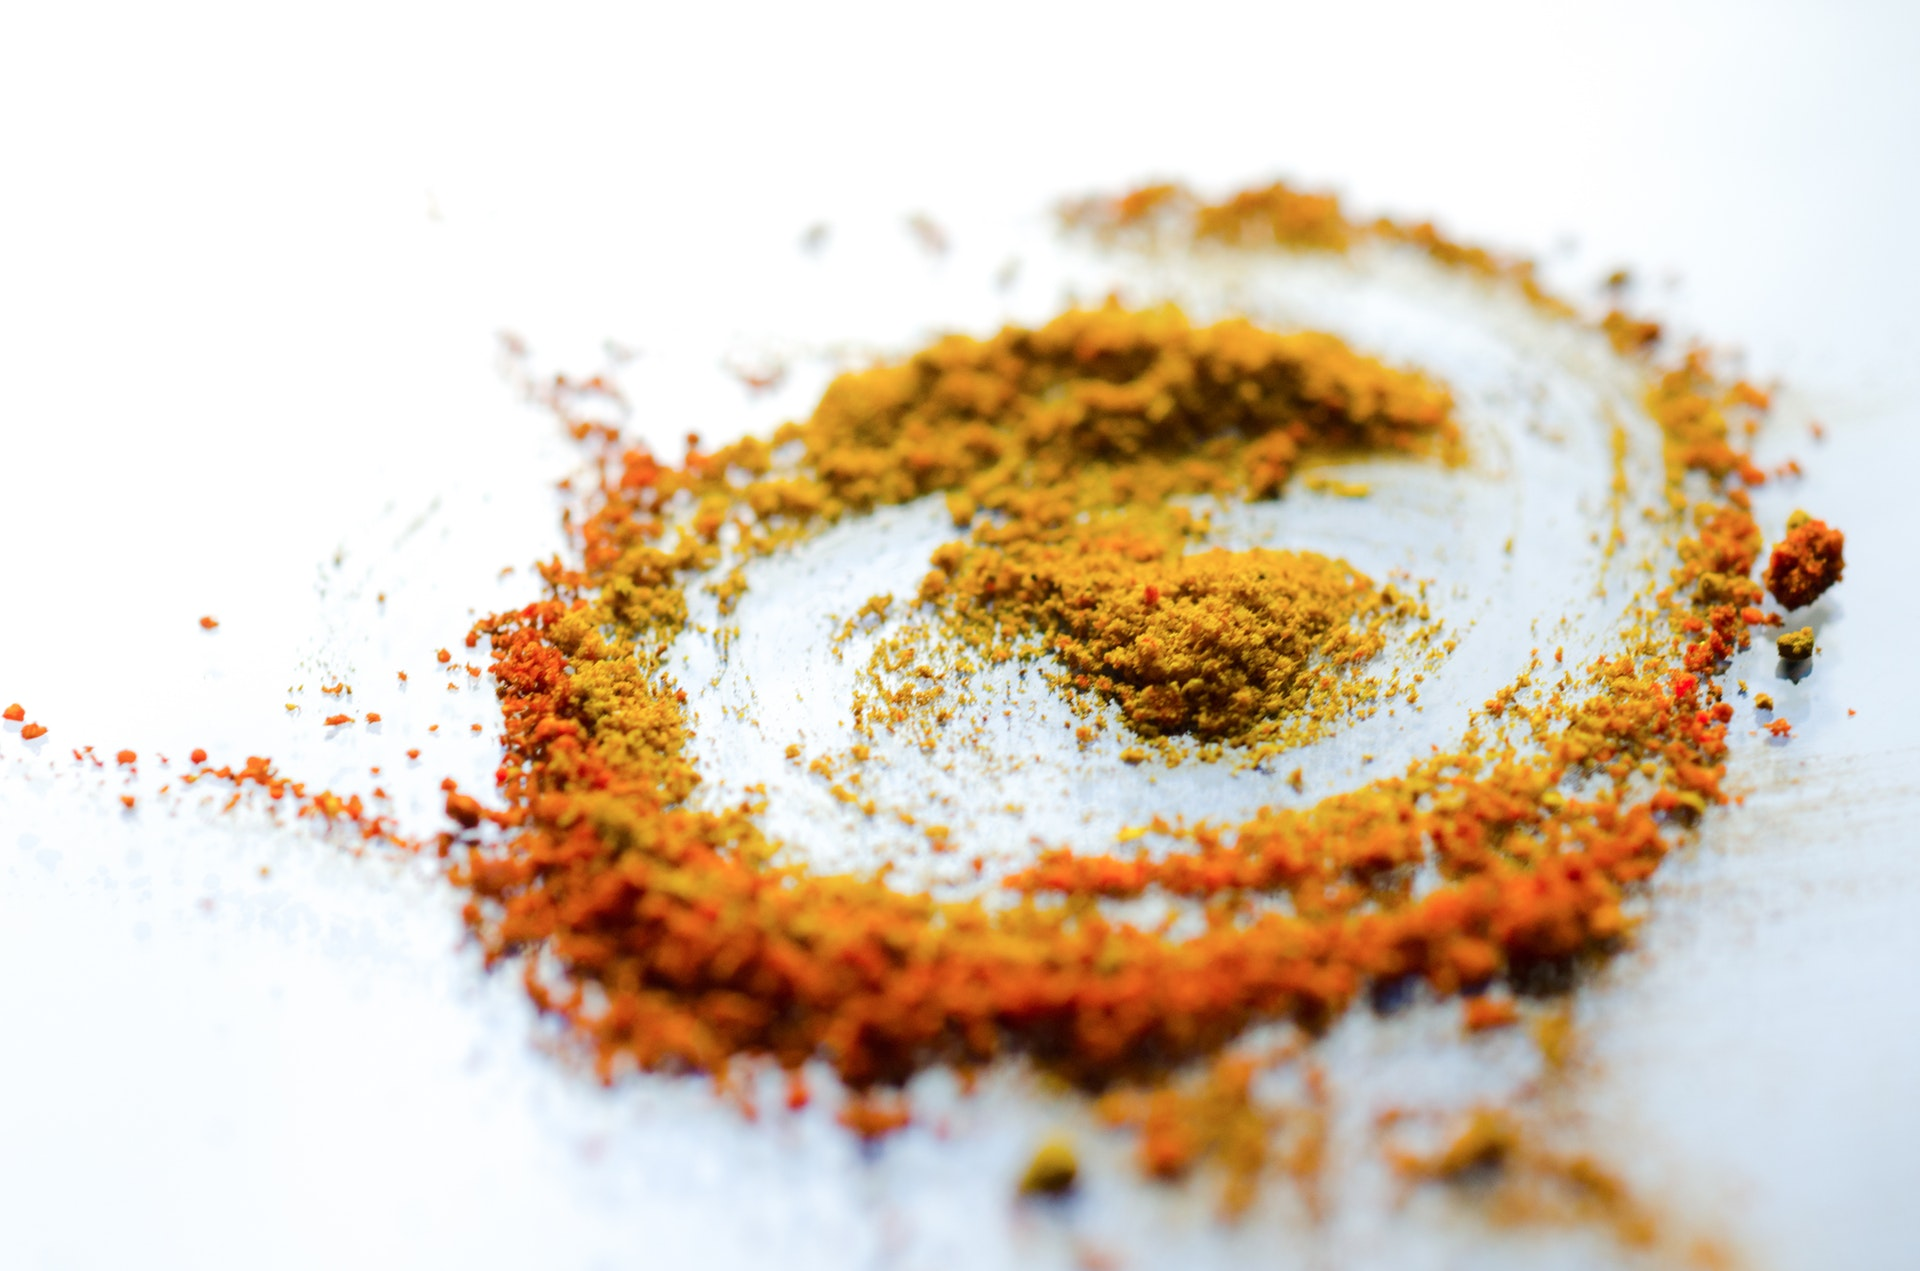 How long do spice powders last?